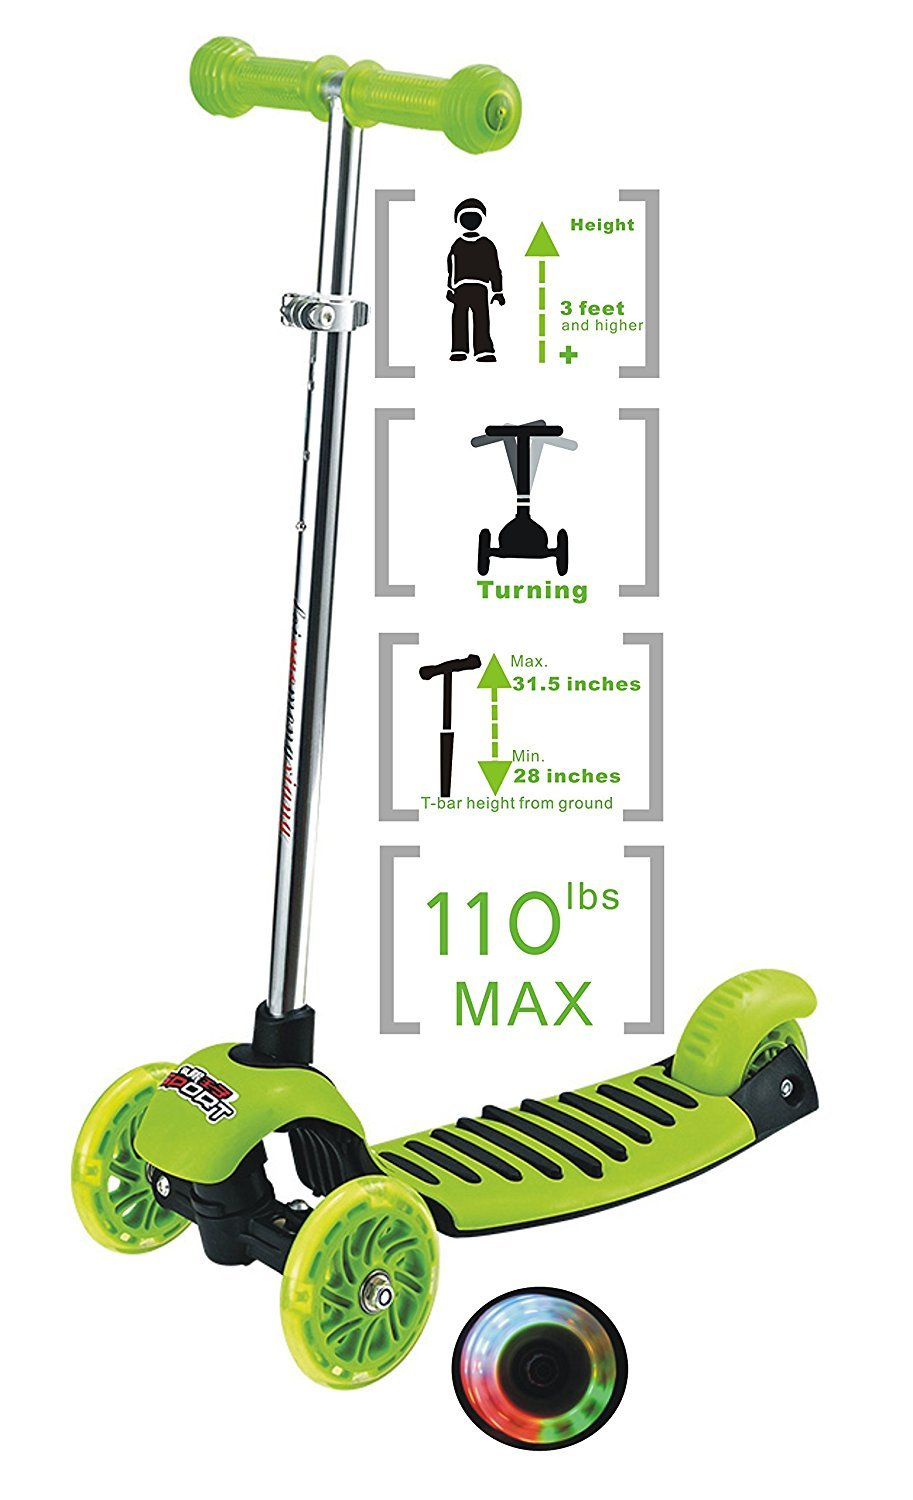 Voyage Sports Kick Scooter for Toddlers - Kick Scooter 3 Wheel Adjustable Height, Lean 2 Turn,Kids Scooters 3 Wheel with LED Light up for Boys and Girls by Voyage Sports (Image #4)